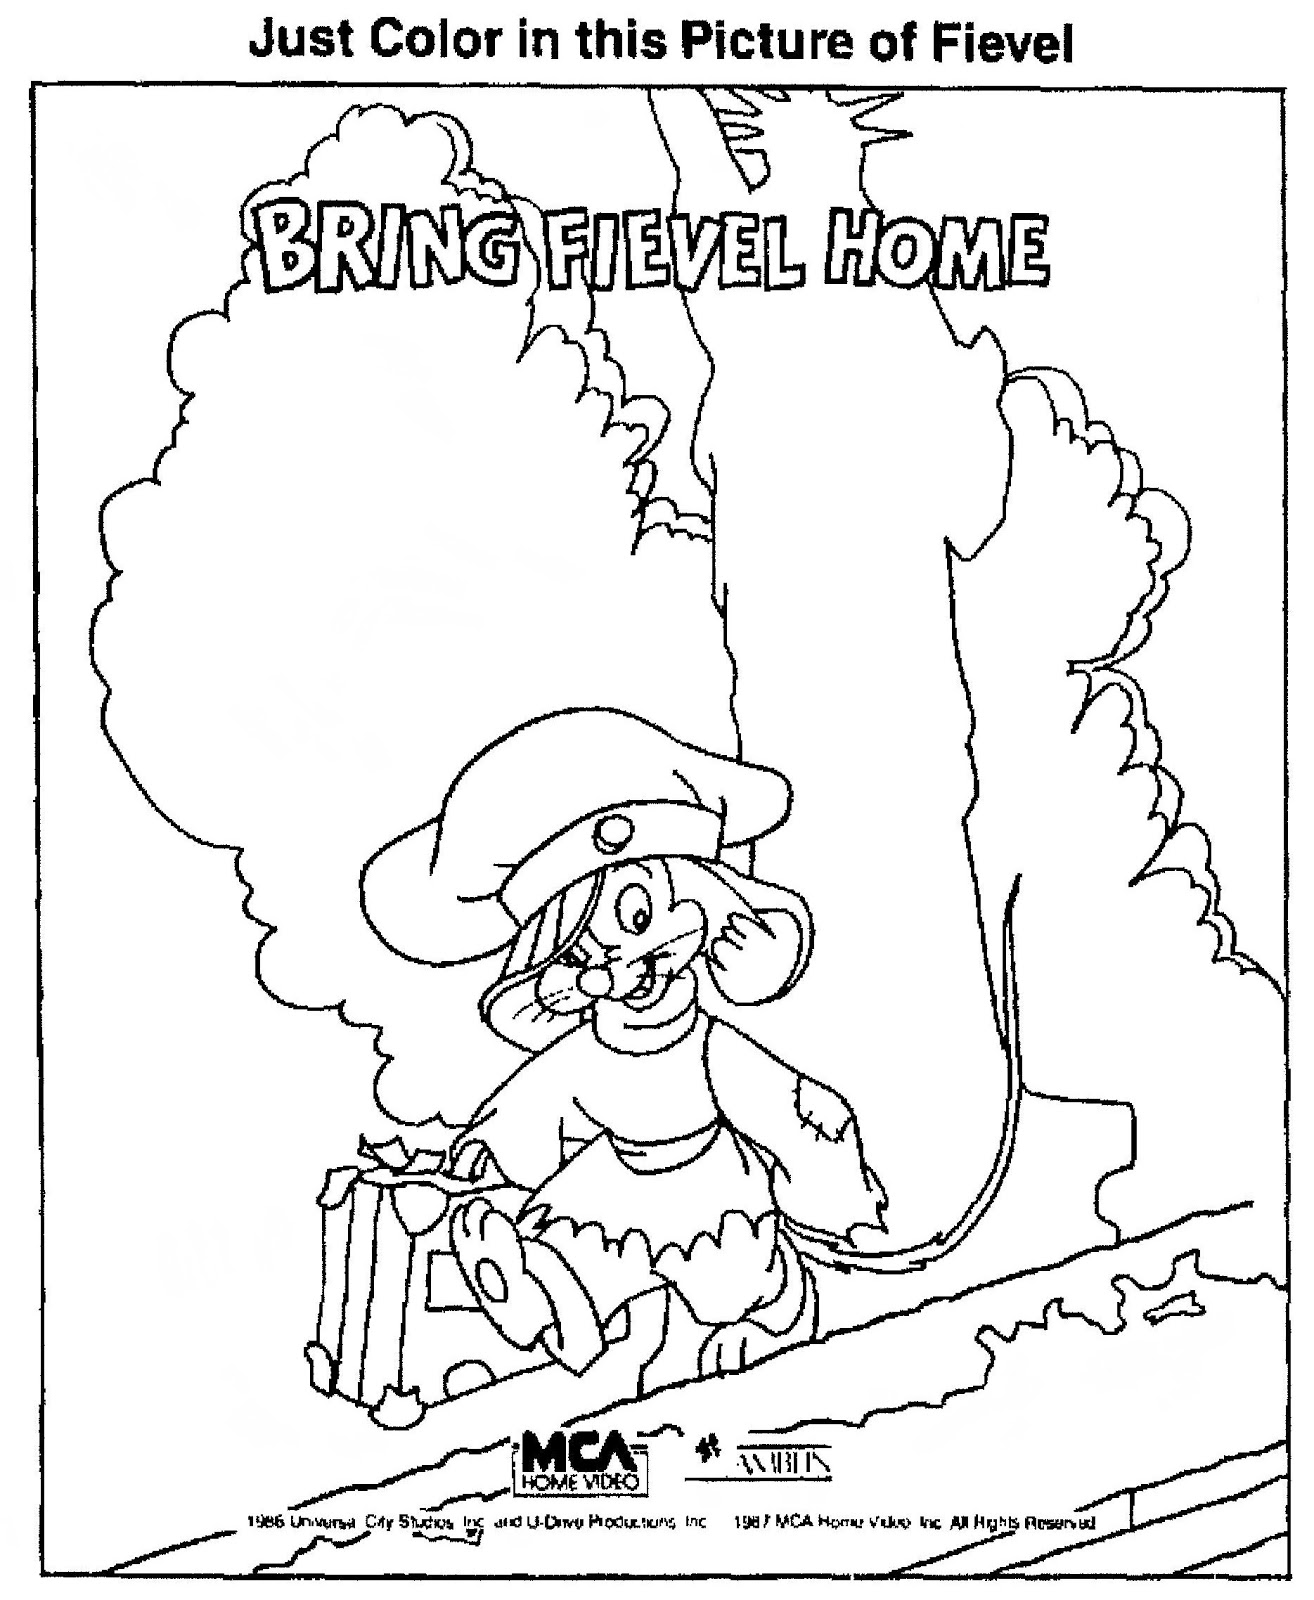 an american tale coloring pages - photo#1